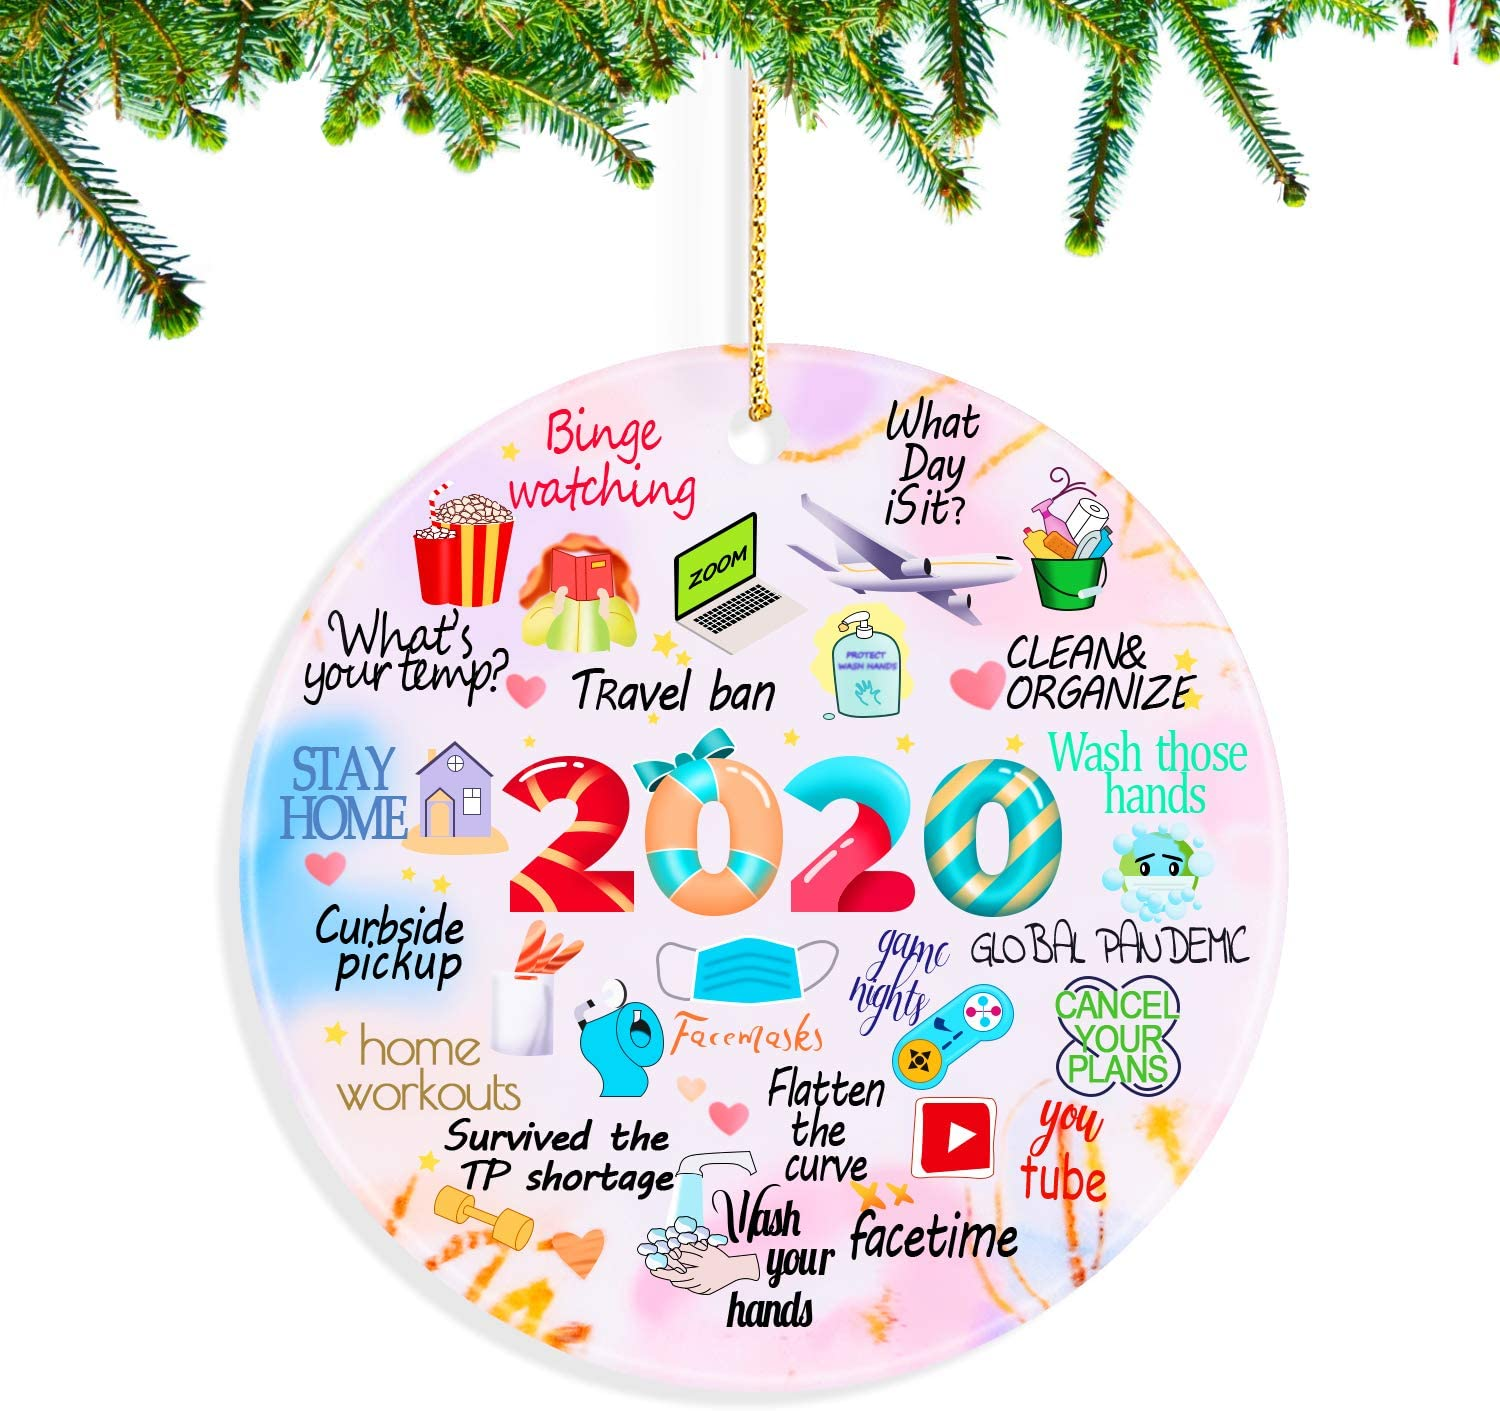 Kexle Christmas Ornaments 2020, Christmas Ornaments 2020 Christmas Ornament Quarantine Christmas Ornaments Clearance Funny Home Decorations - Gifts for Christmas